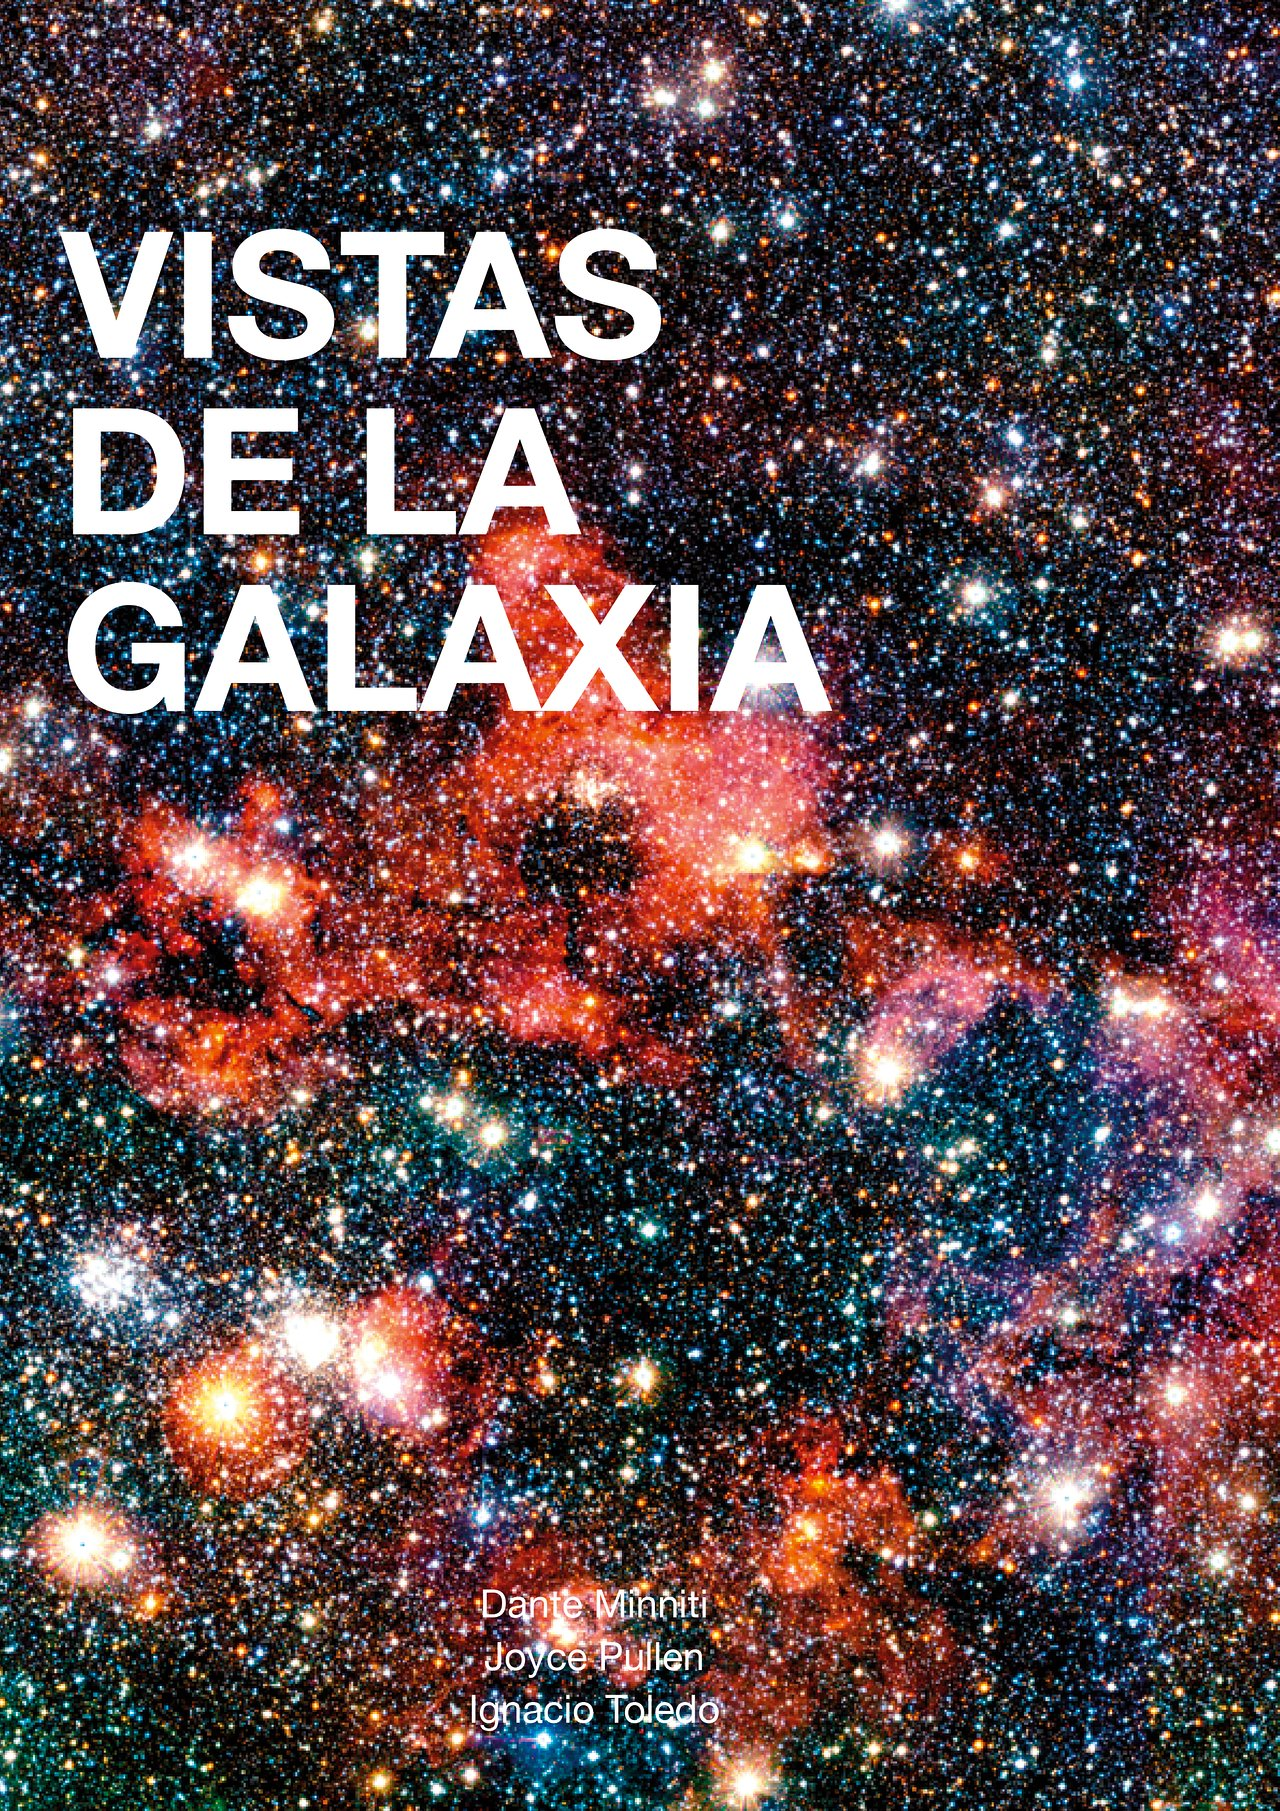 The cover of the book Vistas de la Galaxia